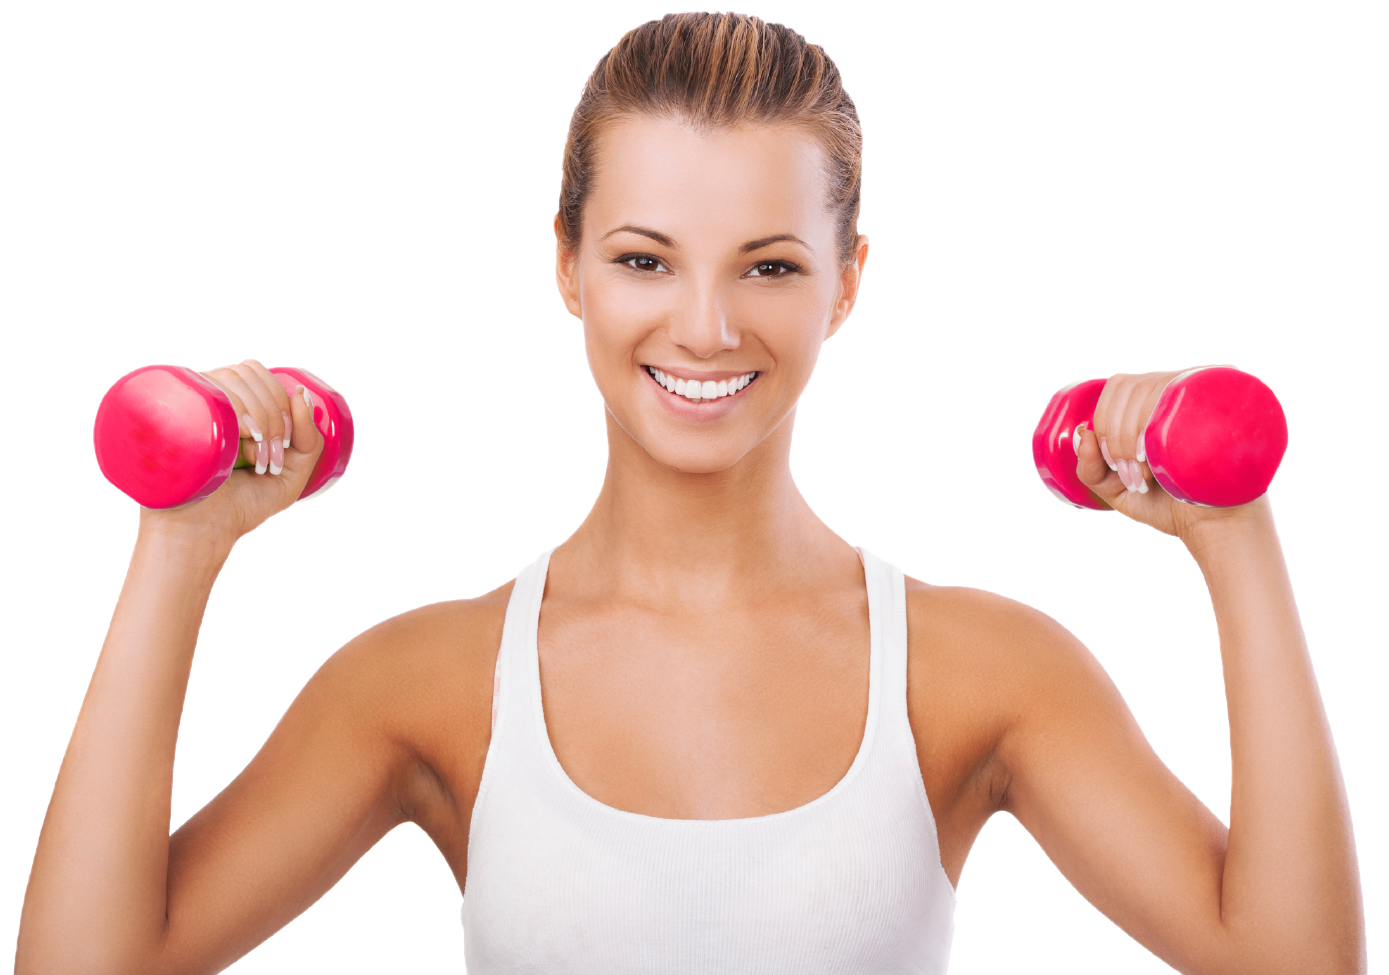 Png transparent images all. Gym clipart woman gym